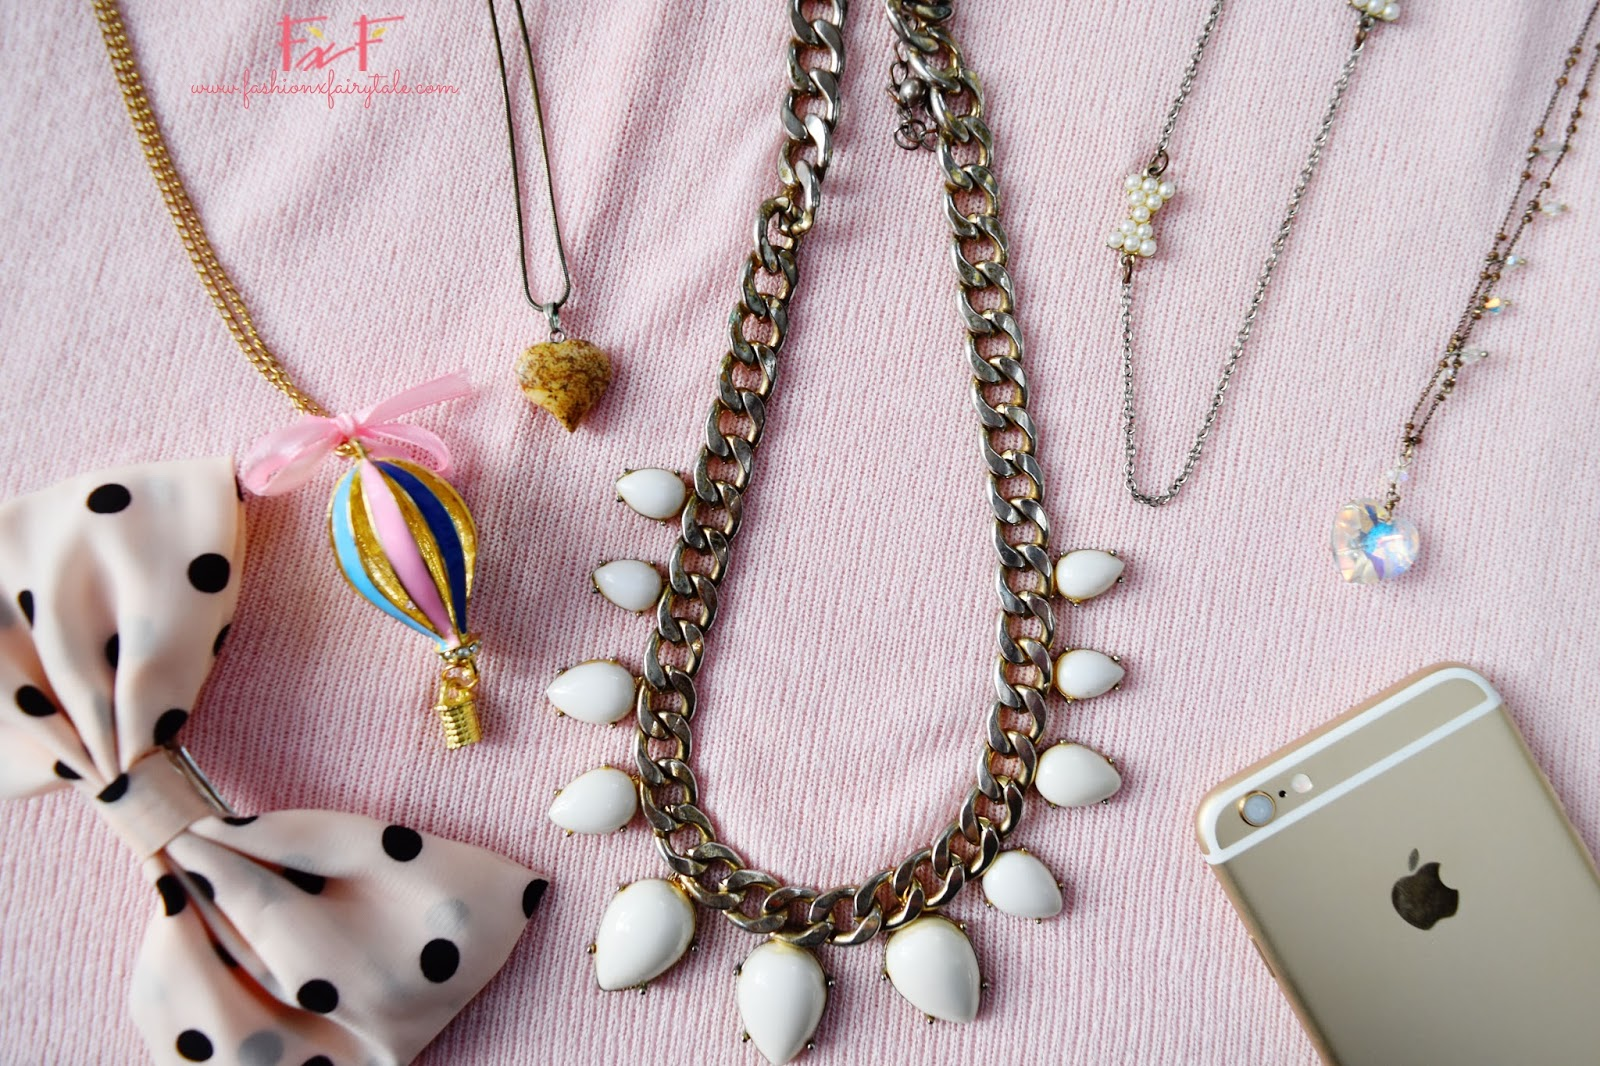 5 Favorite Necklaces I Like to Wear